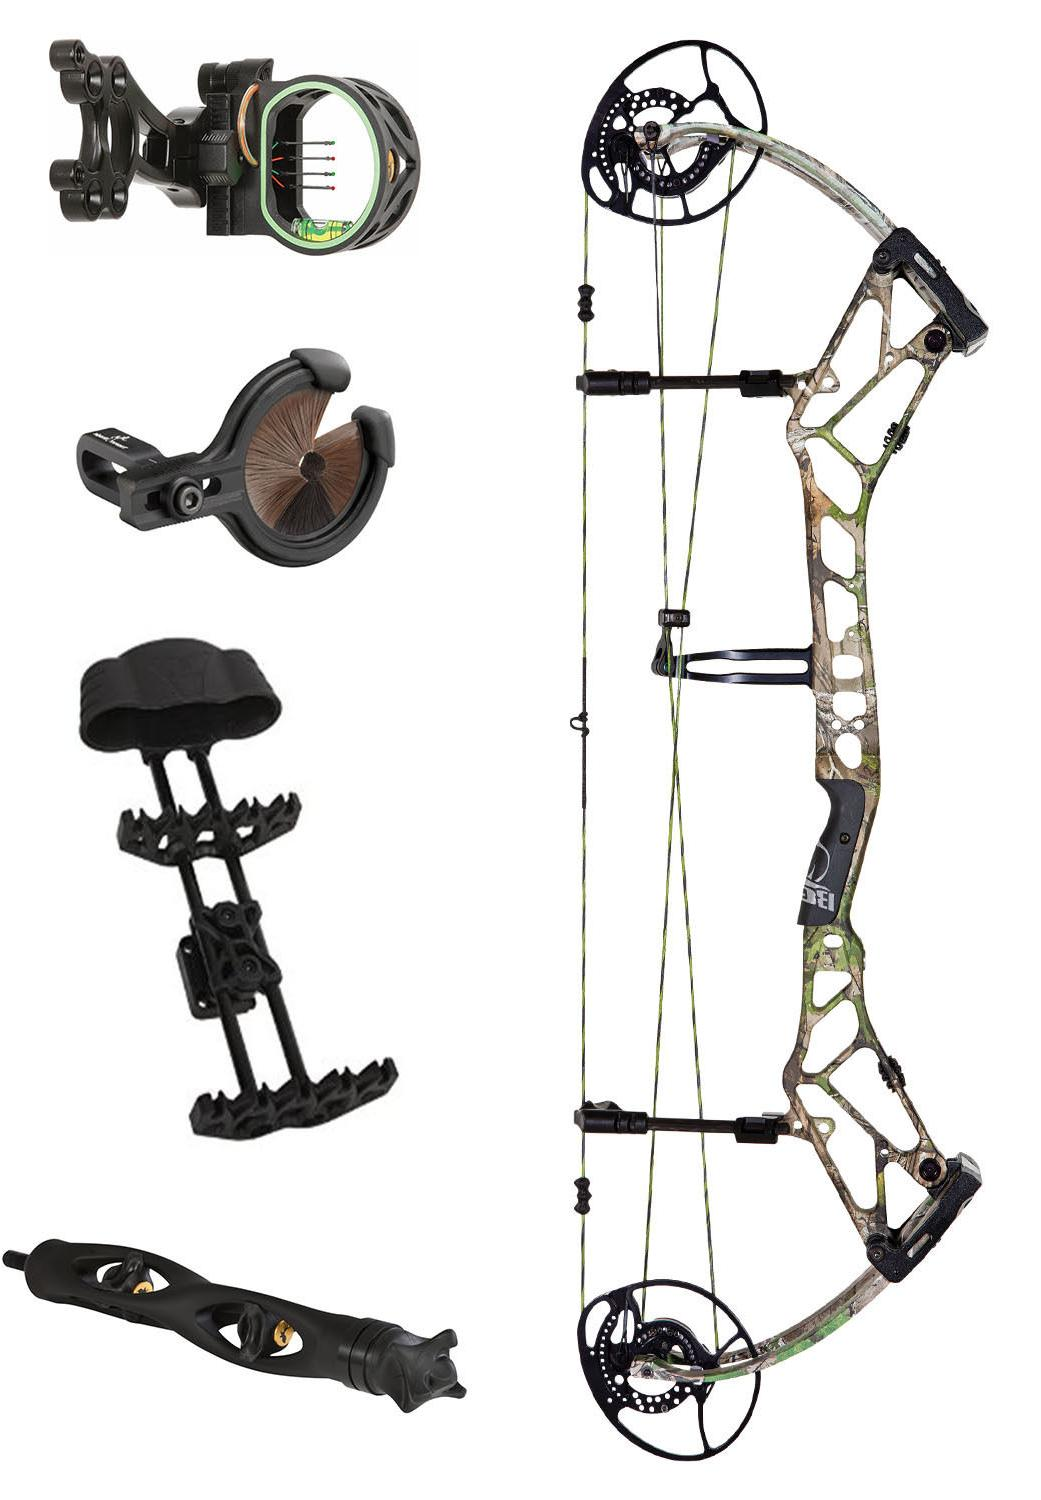 NEW Bear Camo Right 55-70lb Compound Bow Hunting Package